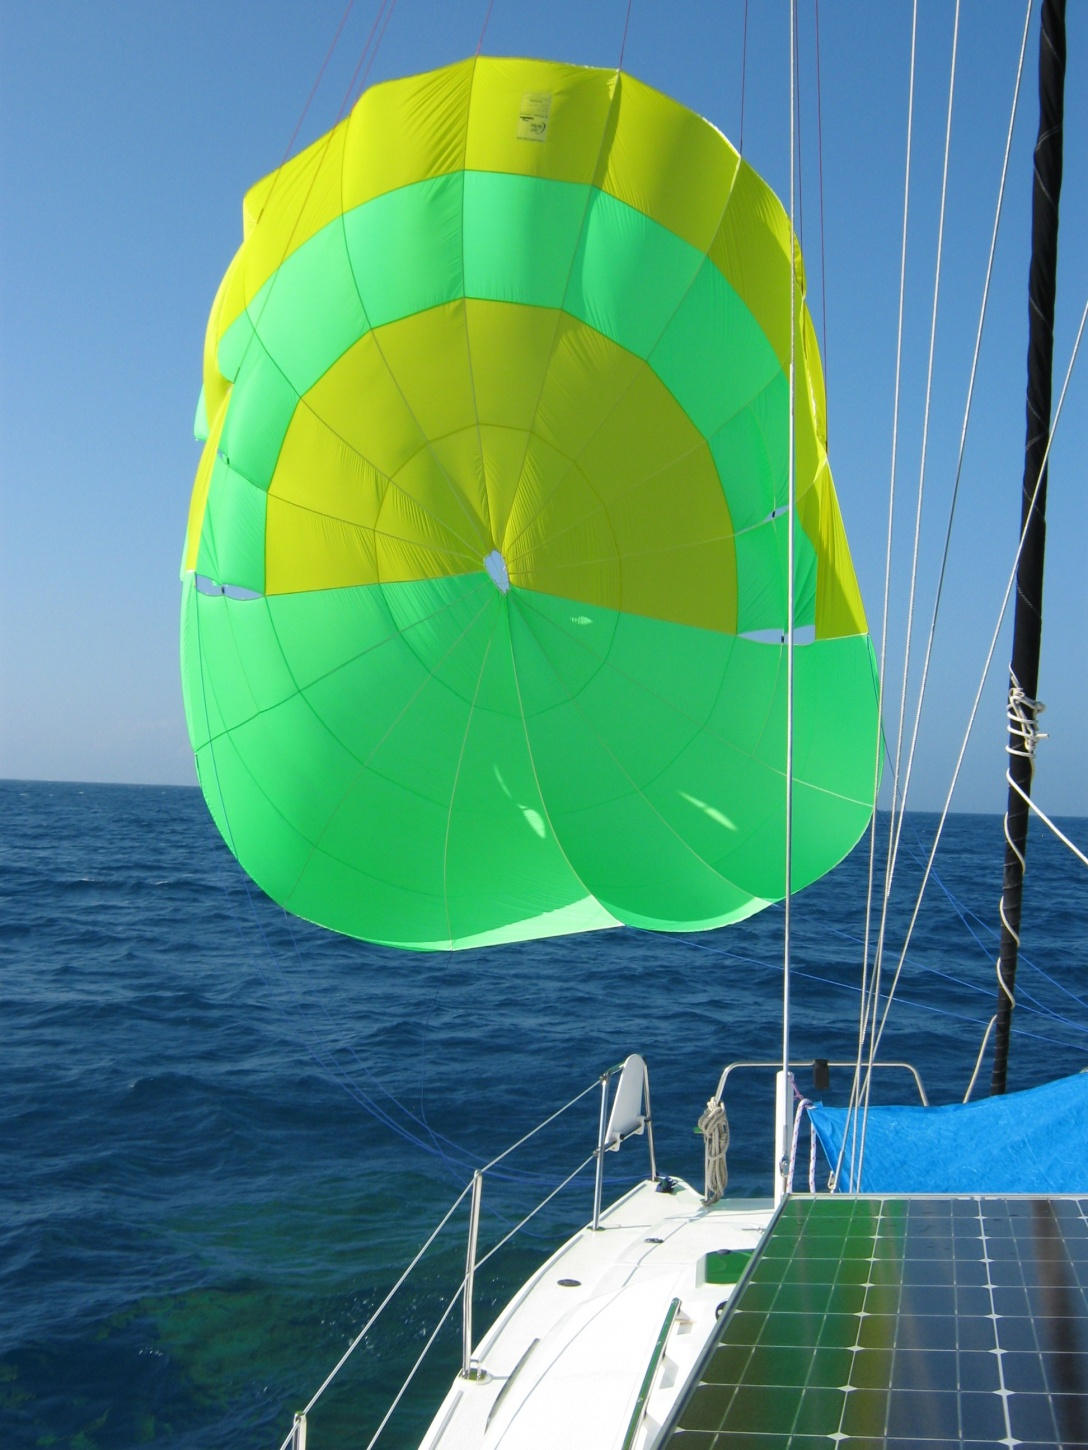 Click image for larger version  Name:Heathers piccys Fiji Sailchute Boat Us 277.jpg Views:73 Size:411.3 KB ID:82092